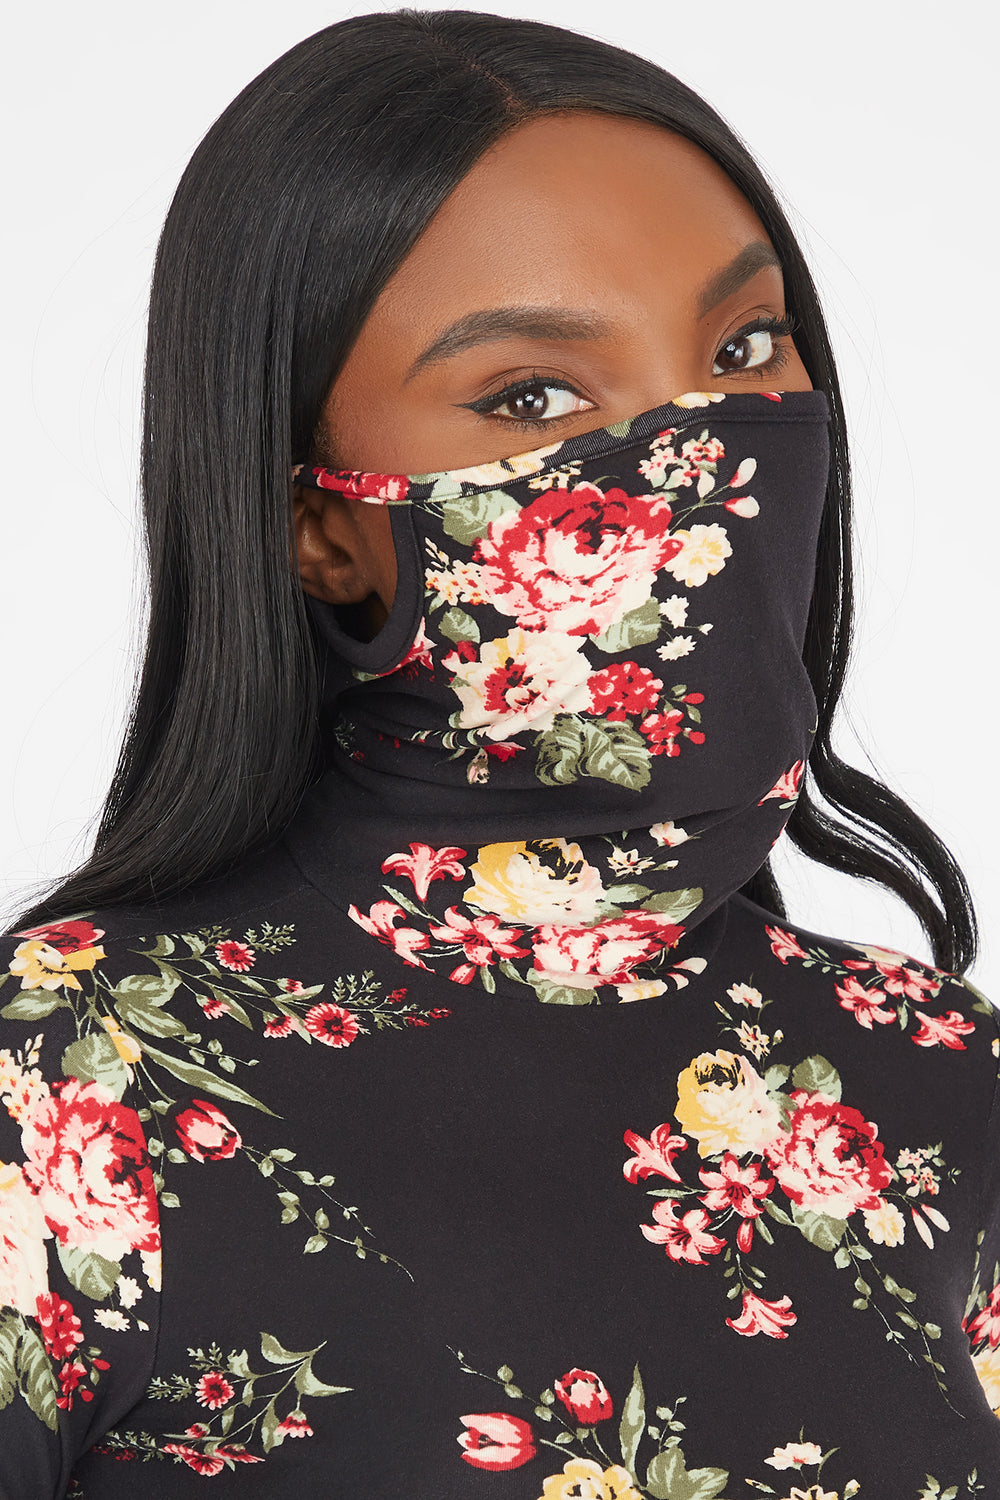 Floral Printed Turtleneck Mask Long Sleeve Top Black